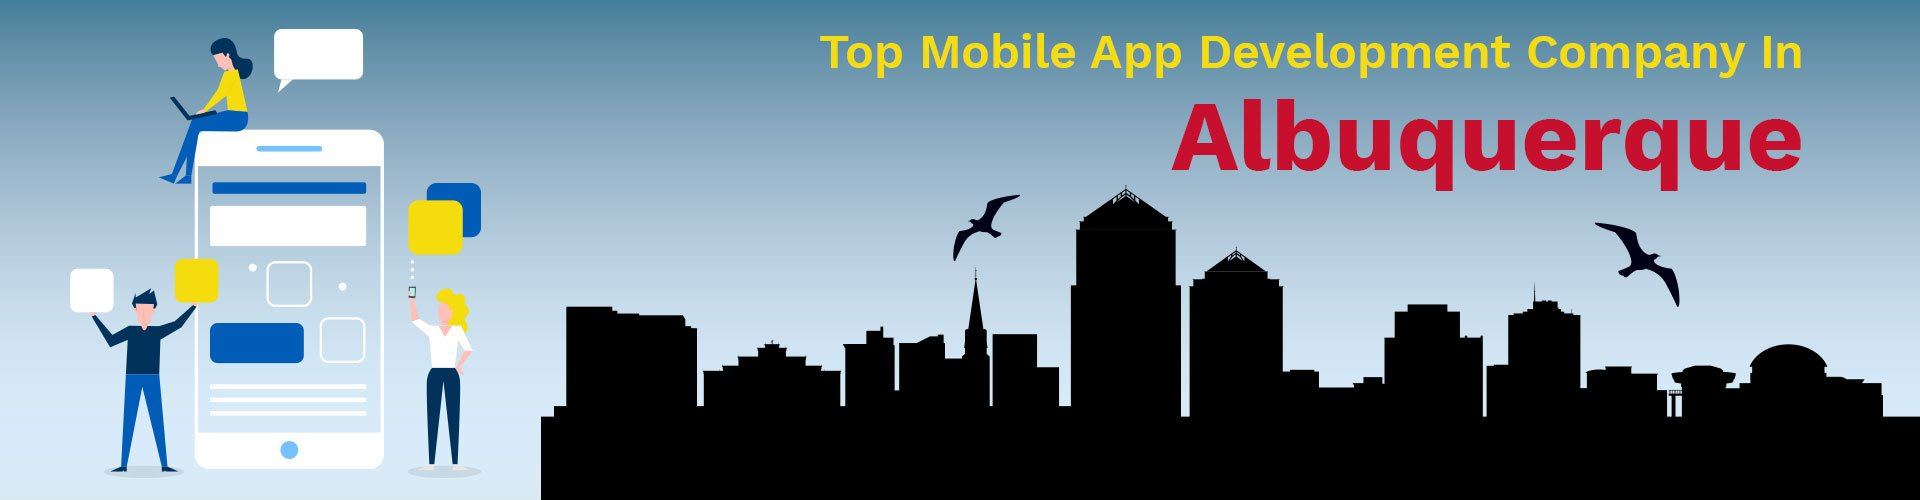 mobile app development company albuquerque